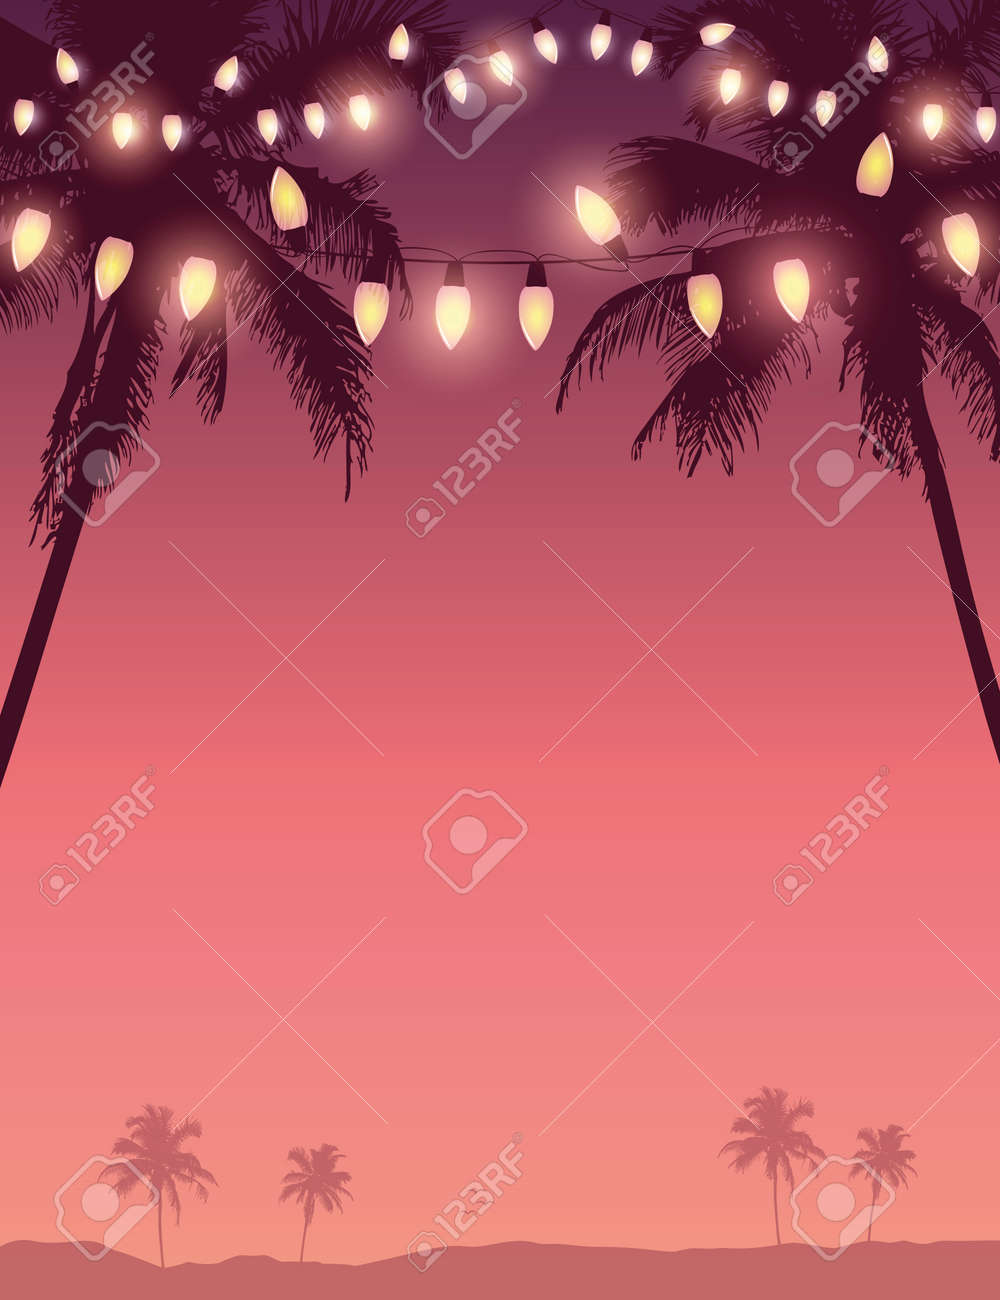 tropical summer paradise background with fairy light and palm leaves - 173389576